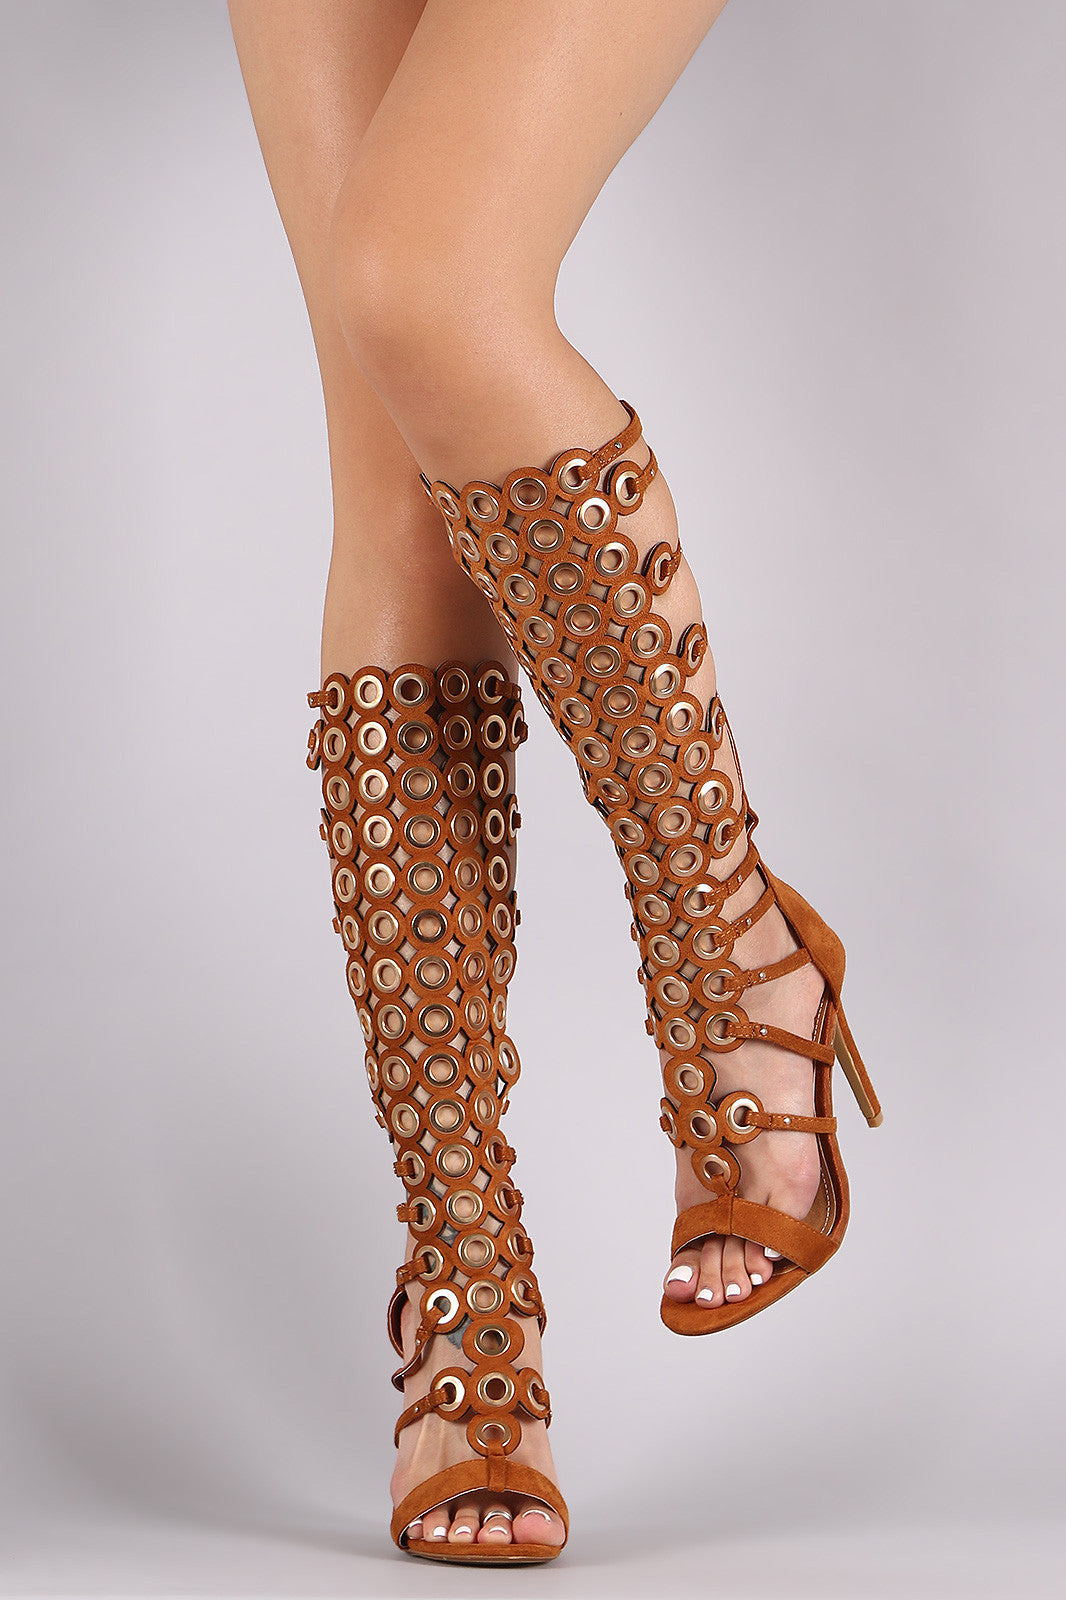 Suede Grommets Embellished Strappy Gladiator Heel - Thick 'N' Curvy Shop - 4